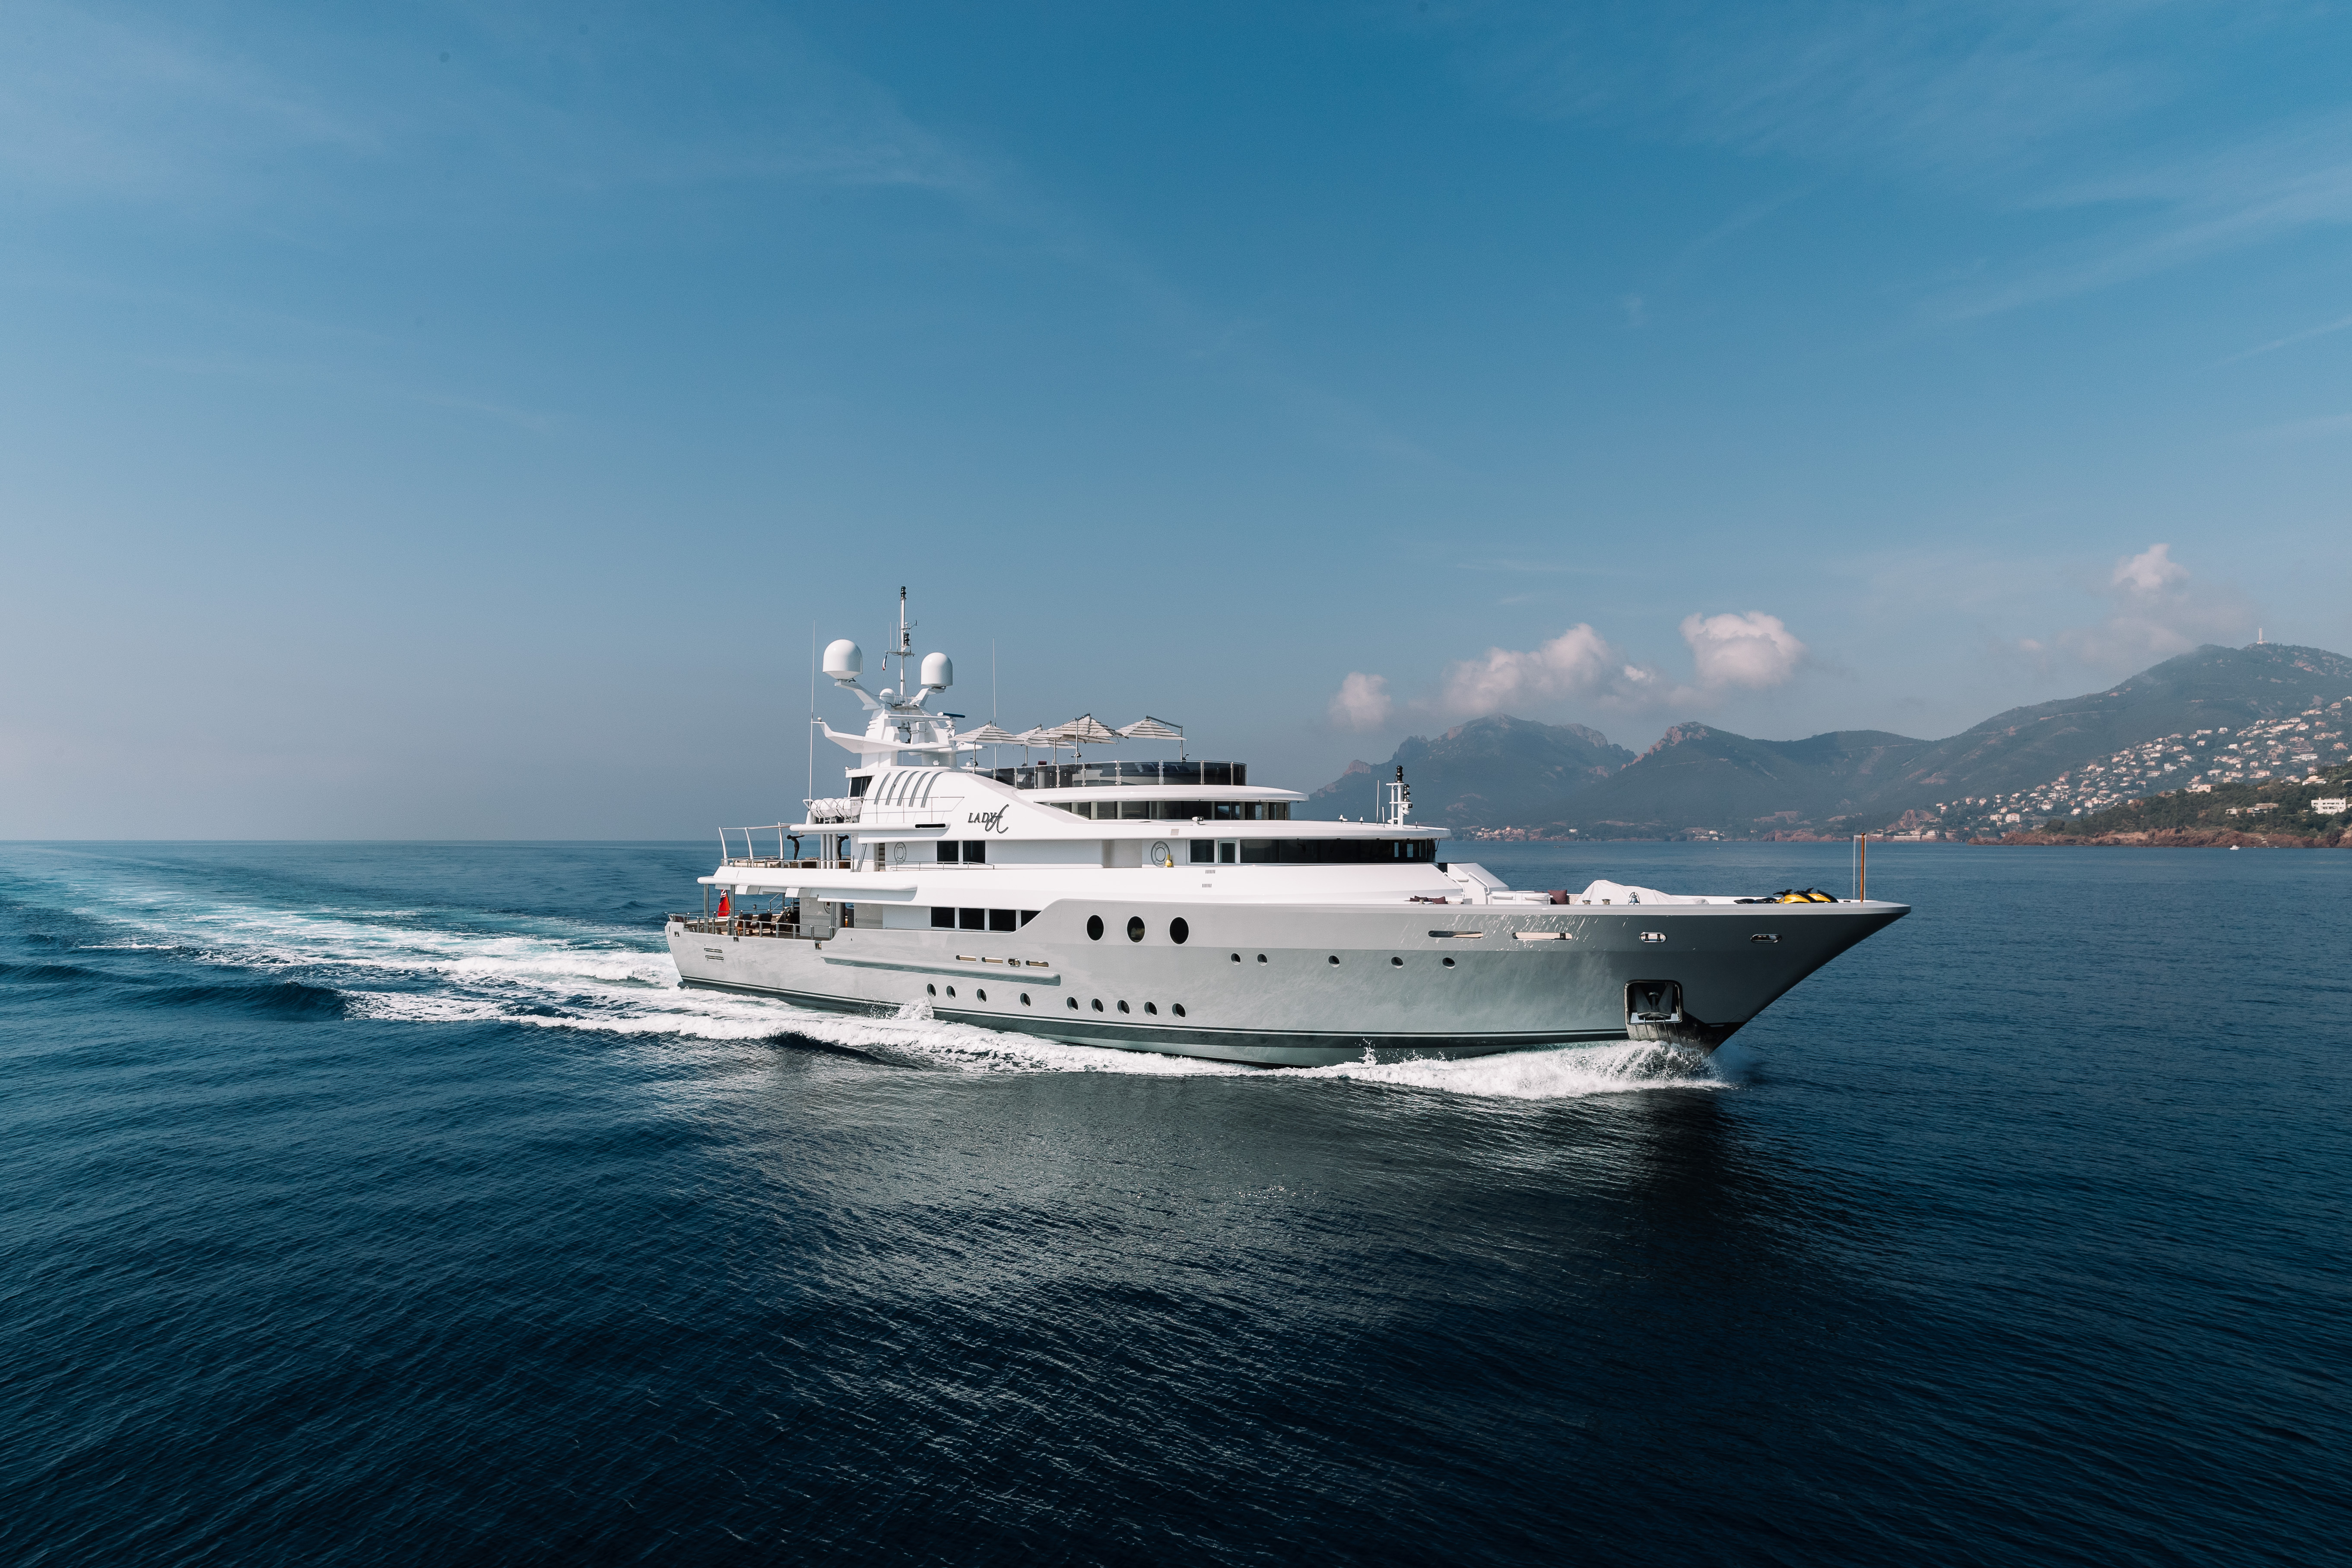 Lady A - the superyacht which belongs to Lord Alan Sugar